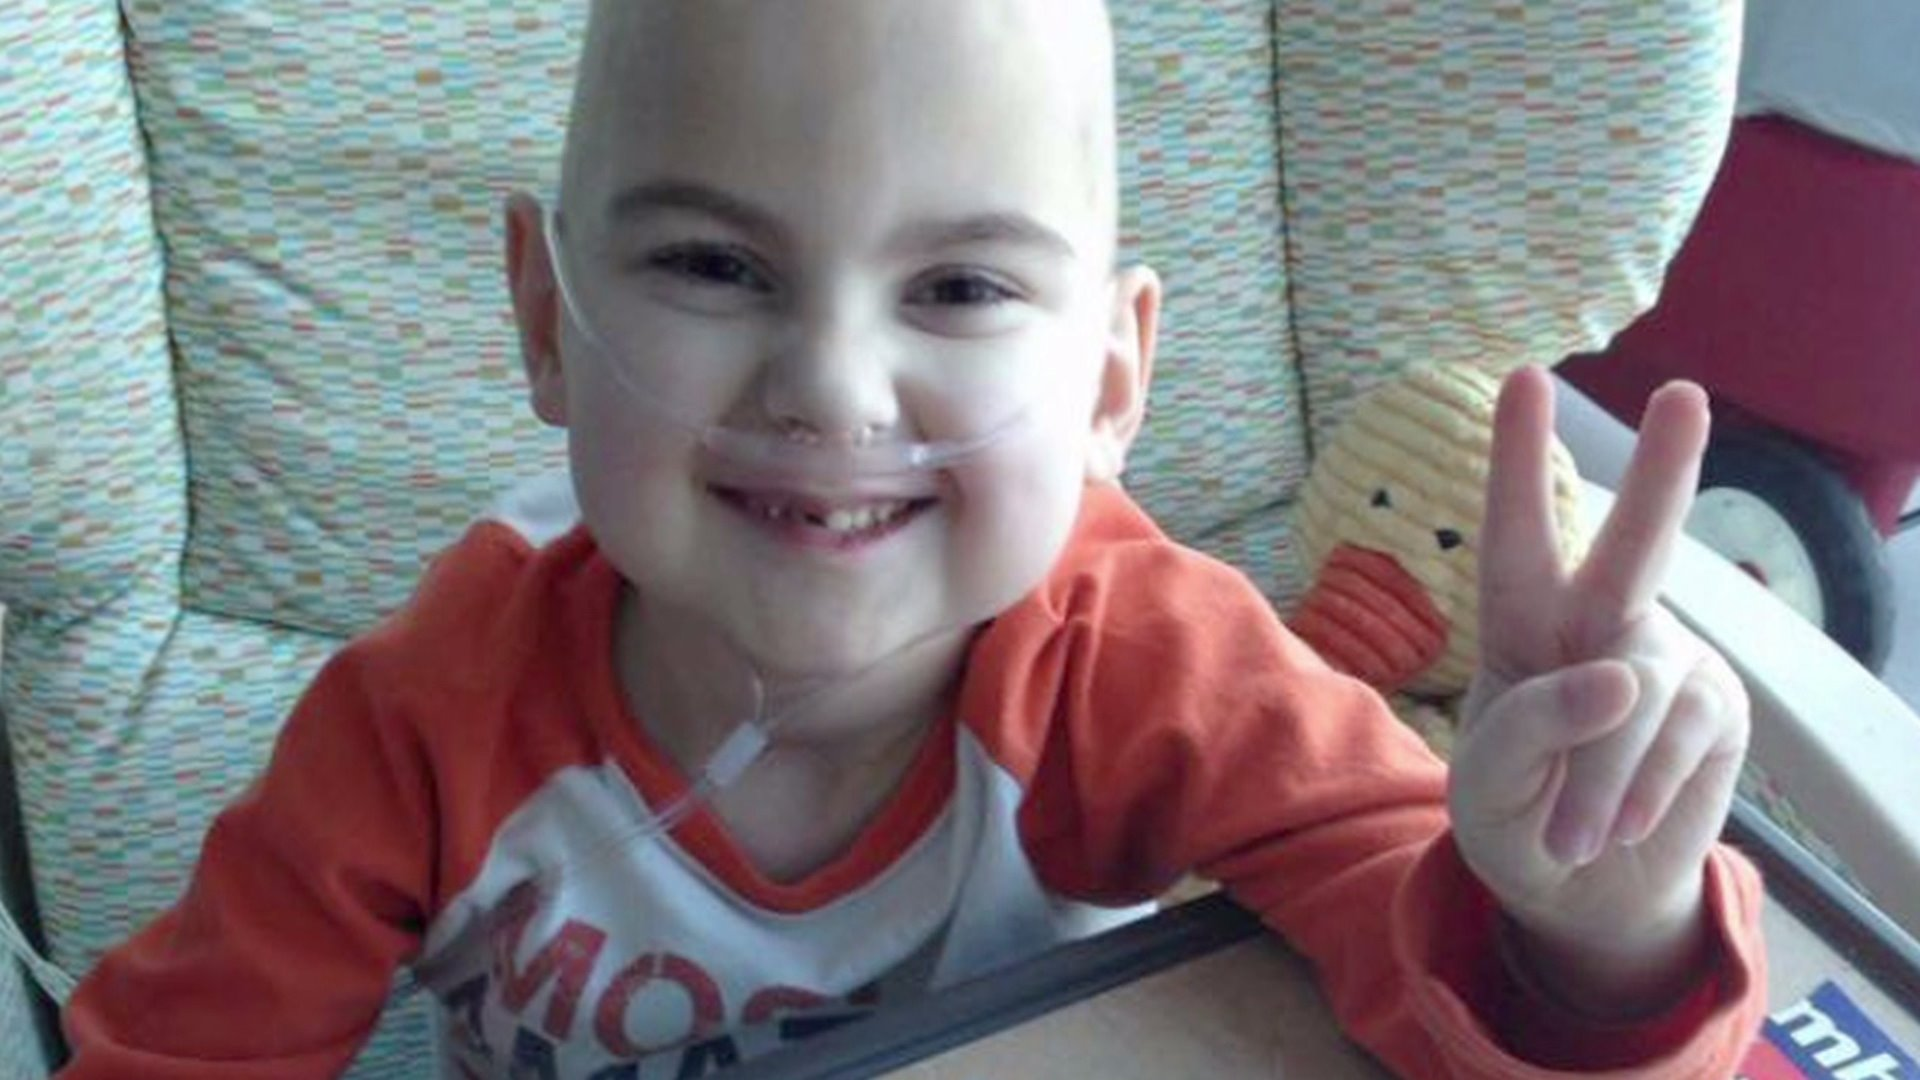 8-Year-Old Boy Battling Cancer Inspires Parents After Another Diagnosis